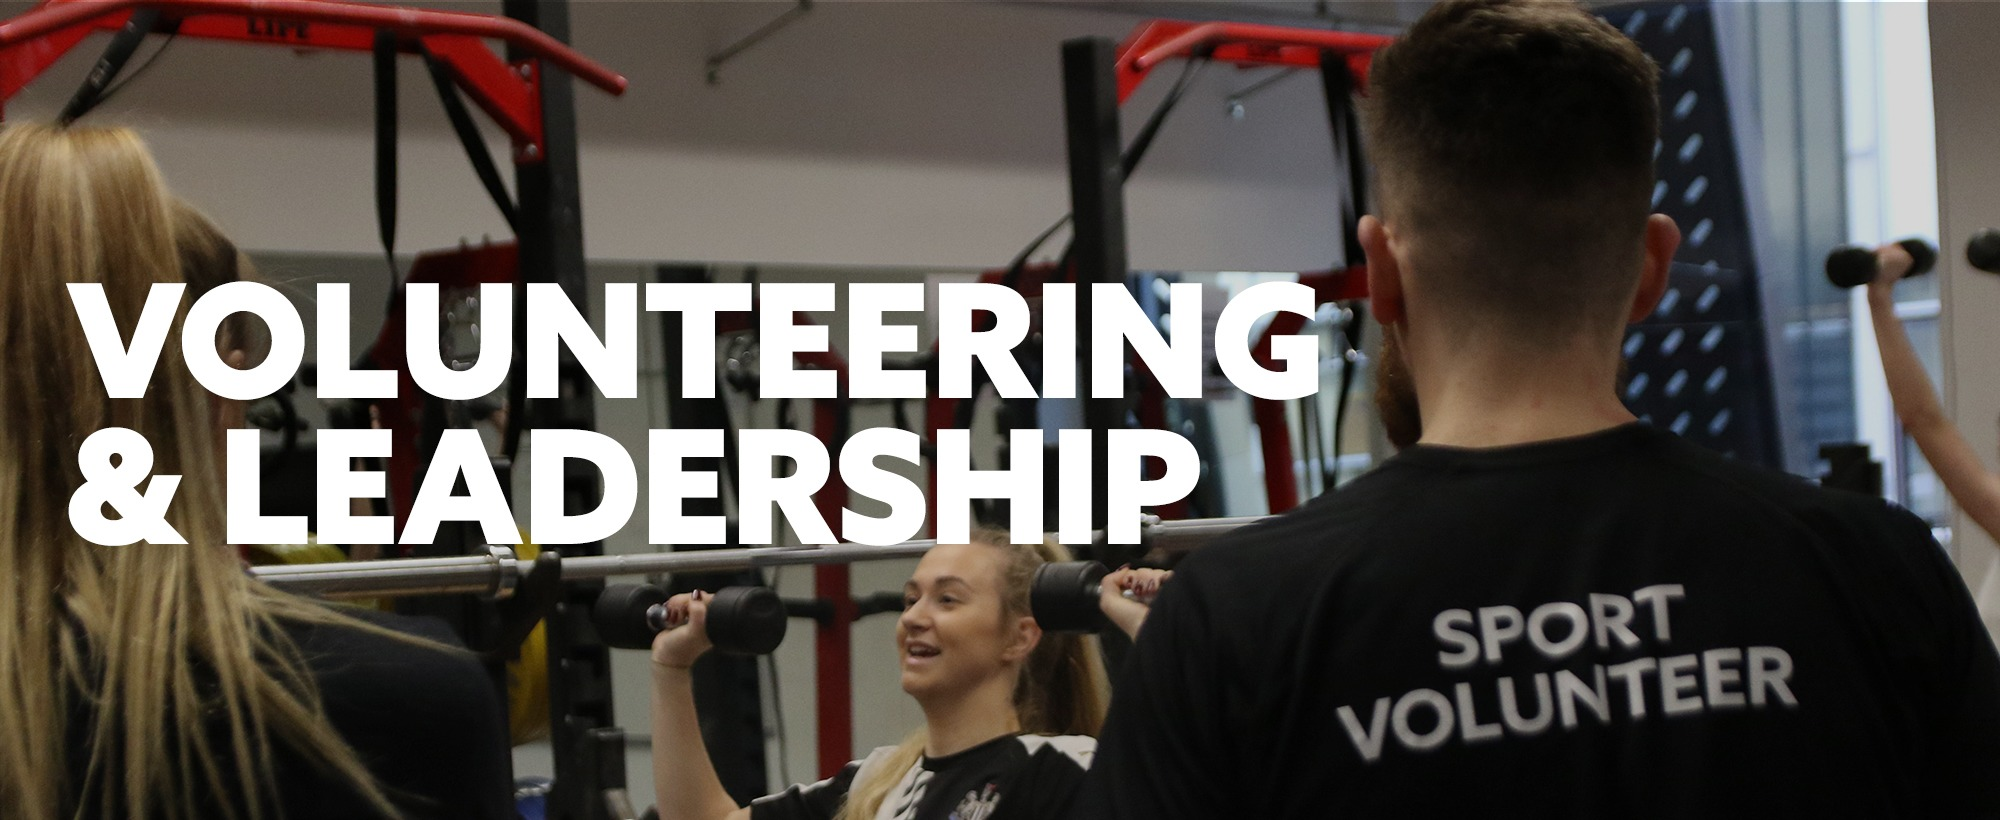 Volunteer & leadership banner v2.jpg